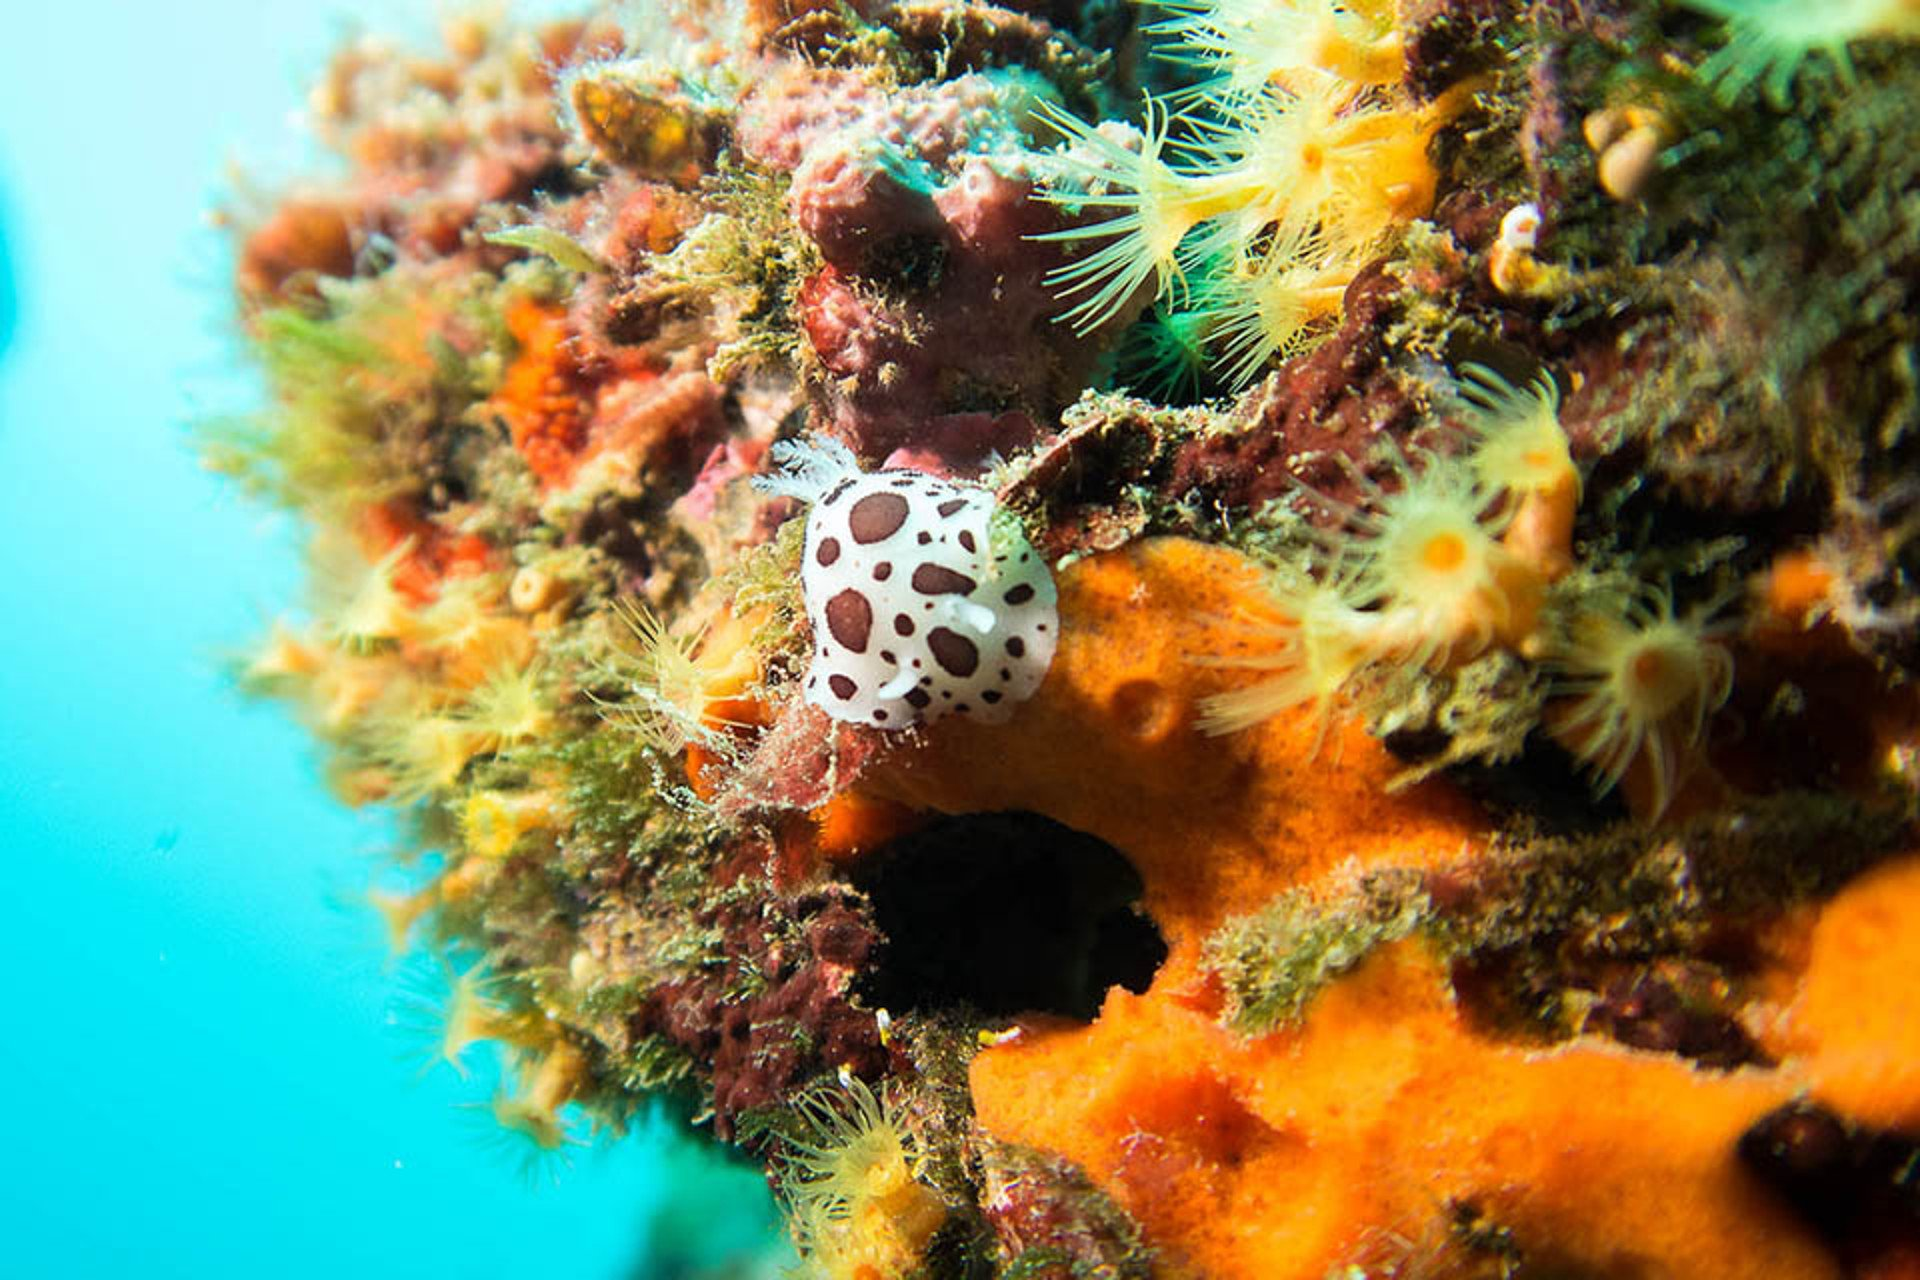 colourful underwater fauna and flora